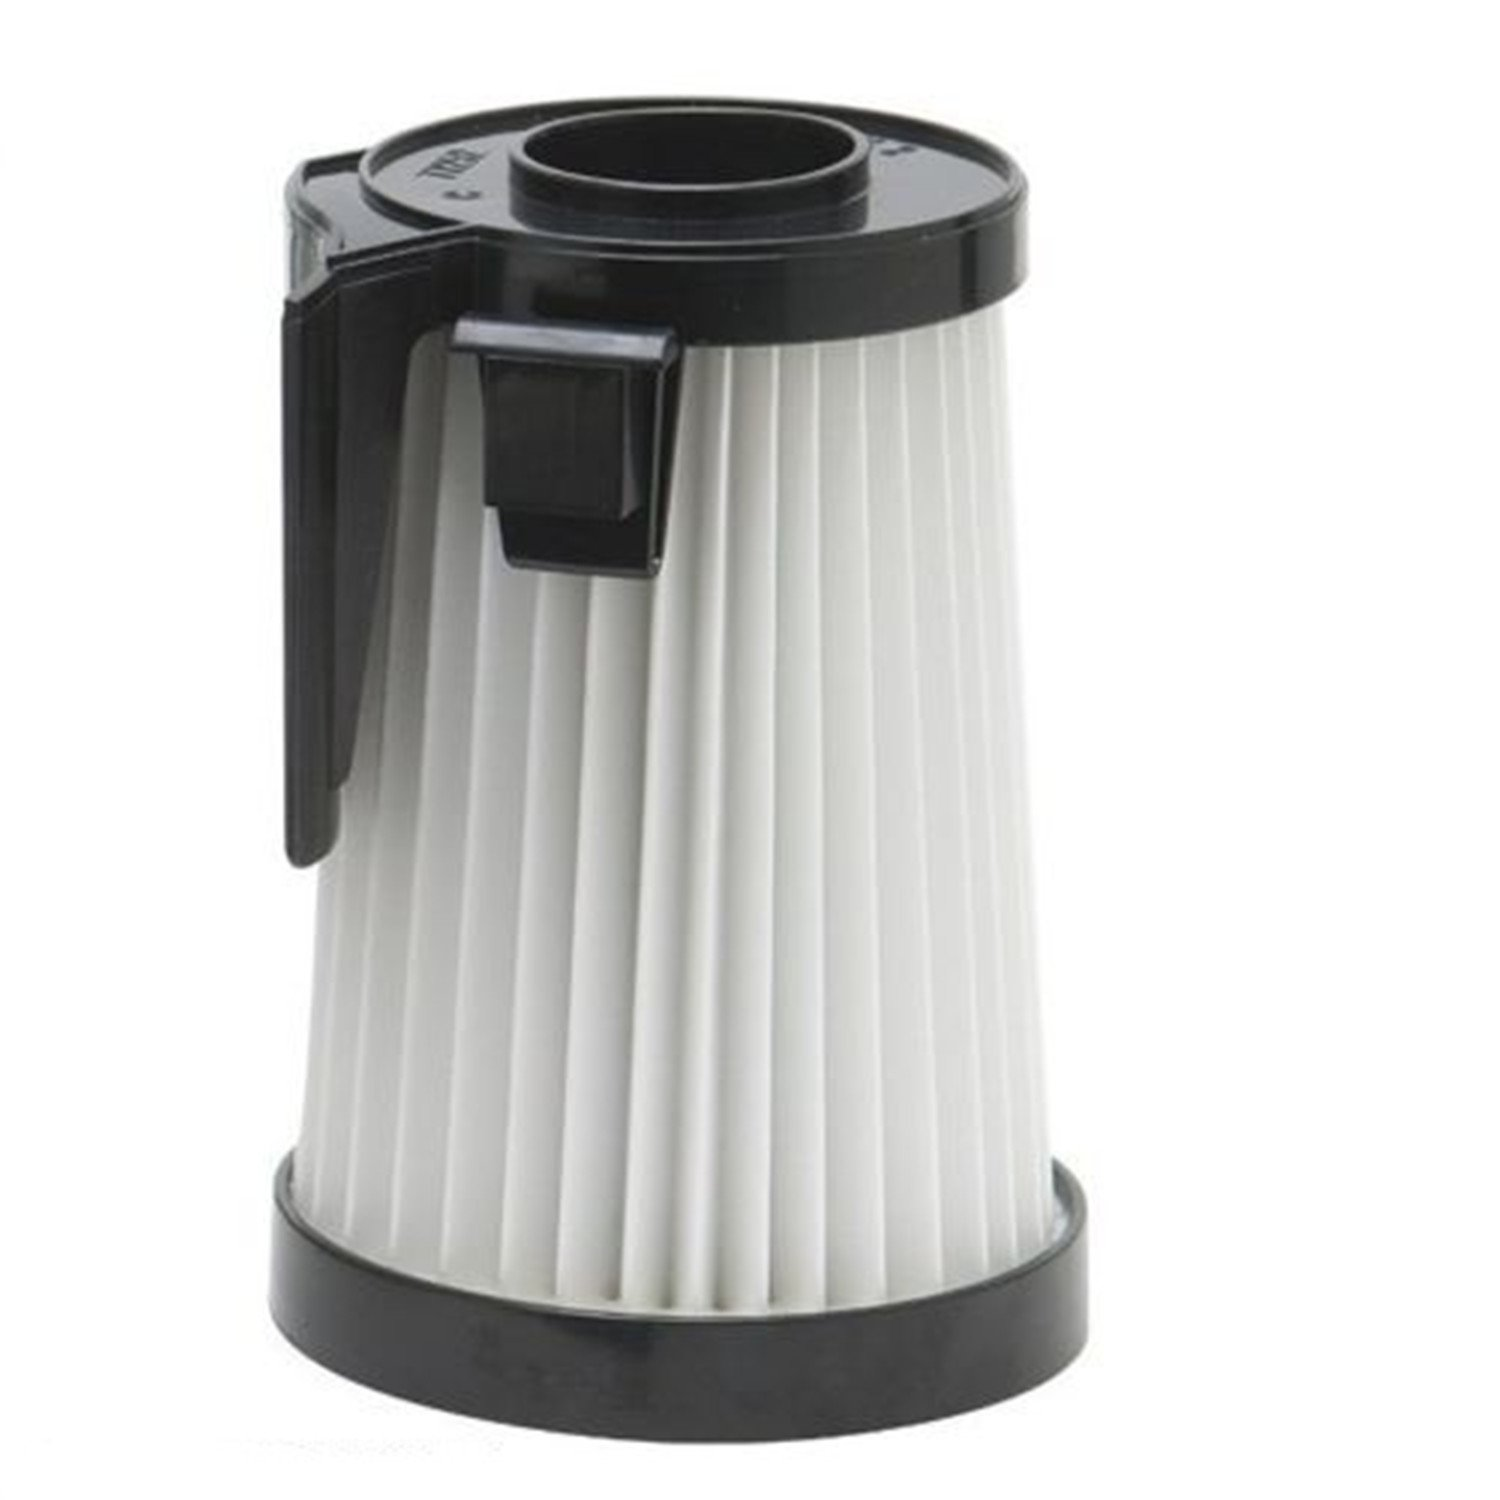 Vacuum Cleaners Filter For Eureka 62731 Optima 631DX 431F 437AZ 439AZ by Eagleggo (Image #1)